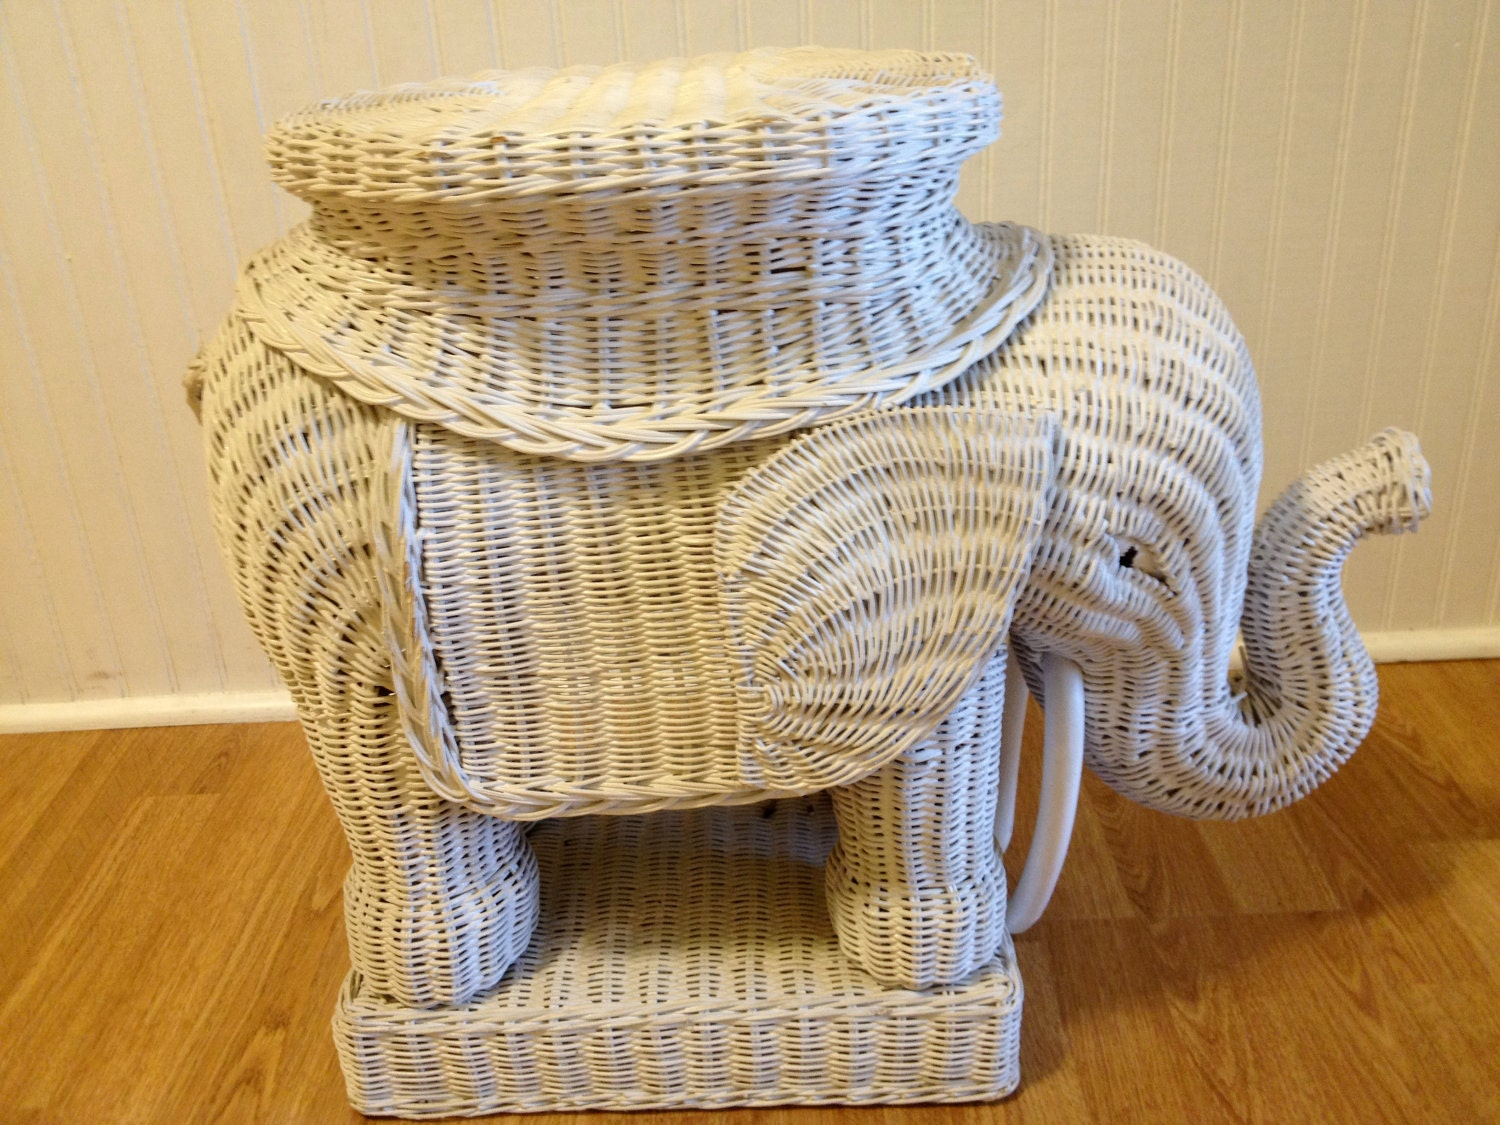 Vintage White Wicker Elephant Table Accent Table Moroccan Boho